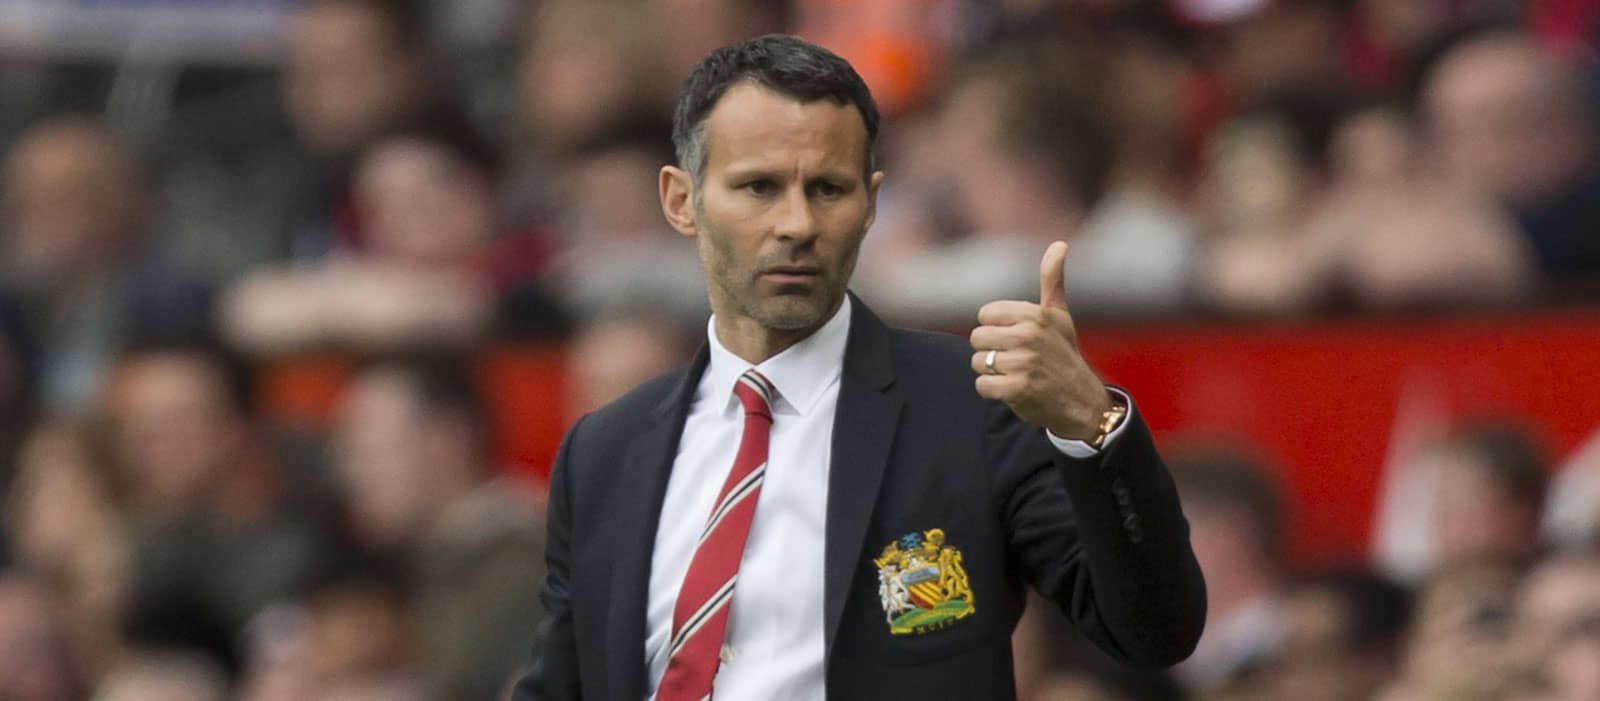 Ryan Giggs: I never got nervous as a player but management is completely different